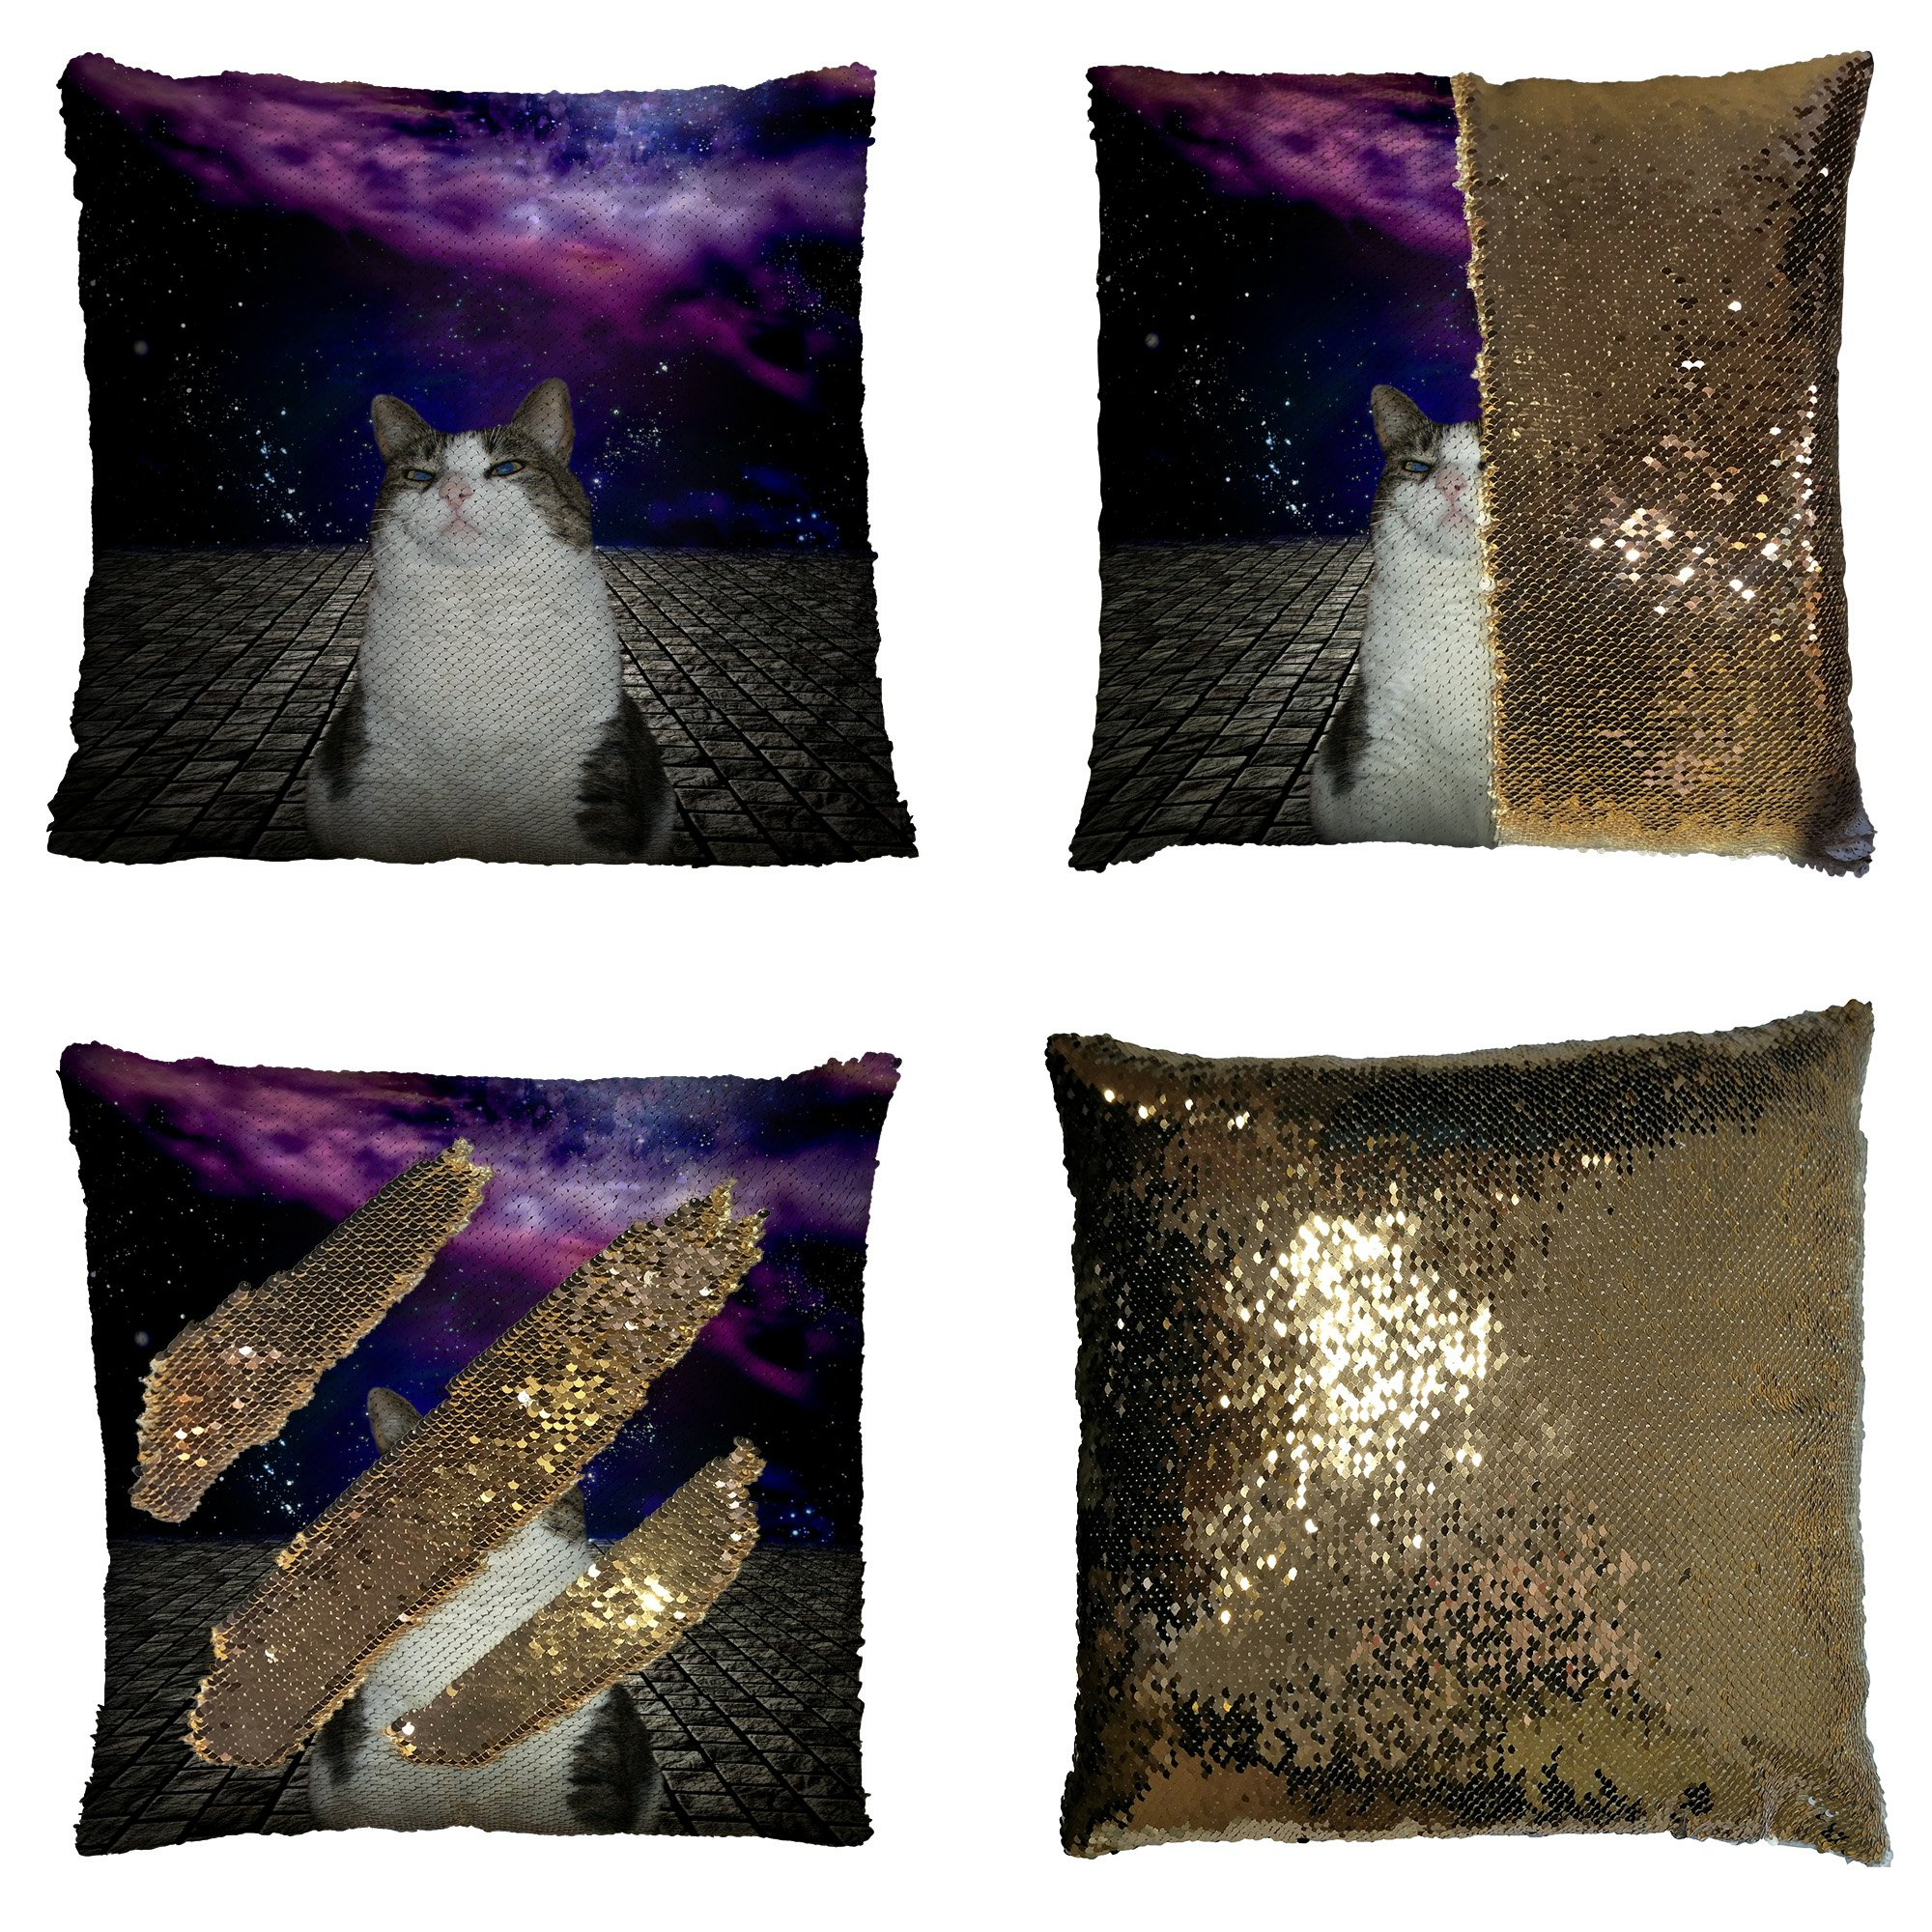 GCKG Comos Background Pillowcase, Proud Cat with Universe galaxy Space Bule Purple Reversible Mermaid Sequin Pillow Case Home Decor Cushion Cover 16x16 inches